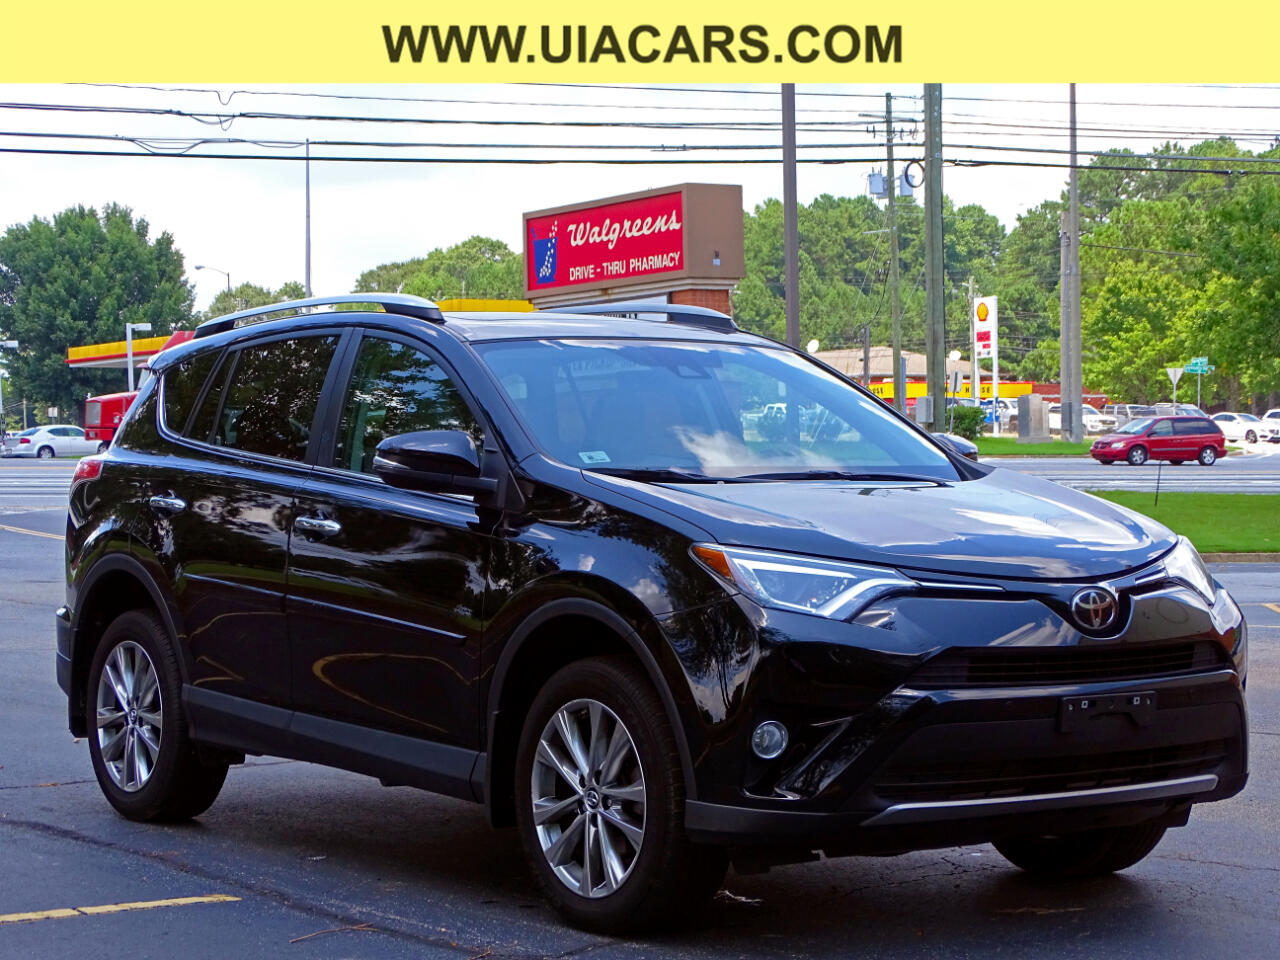 2016 Toyota RAV4 AWD 4dr Limited (Natl)